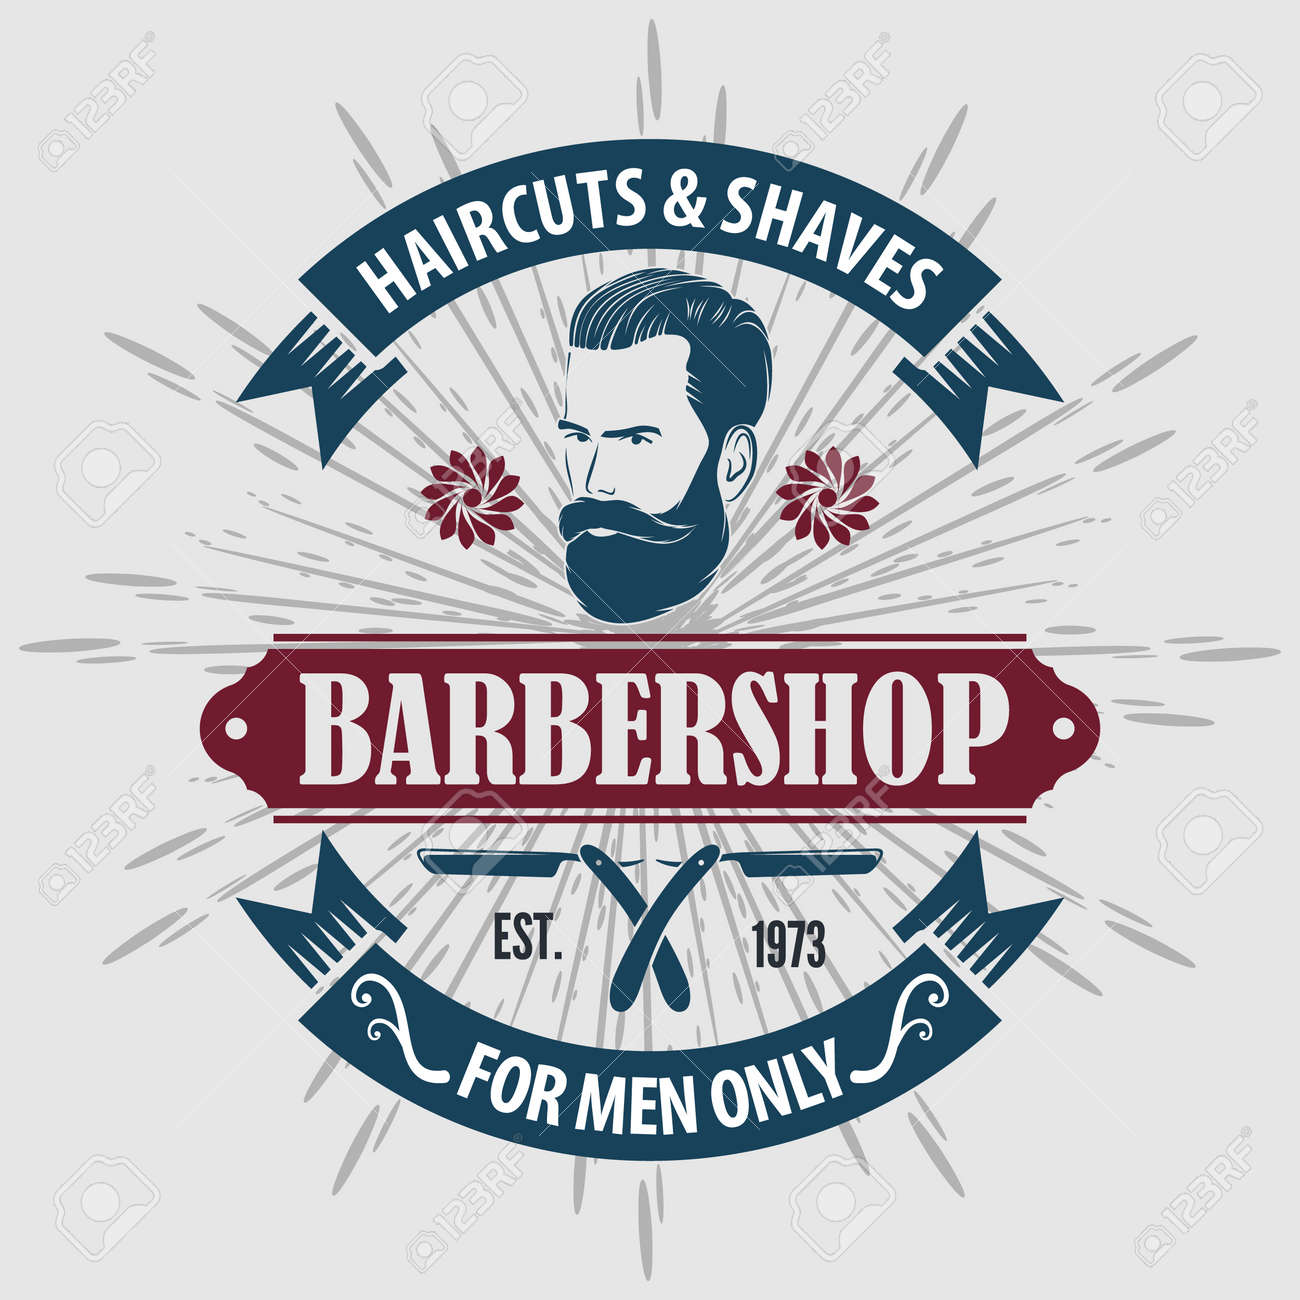 Barber shop poster template with Bearded men - 169447752